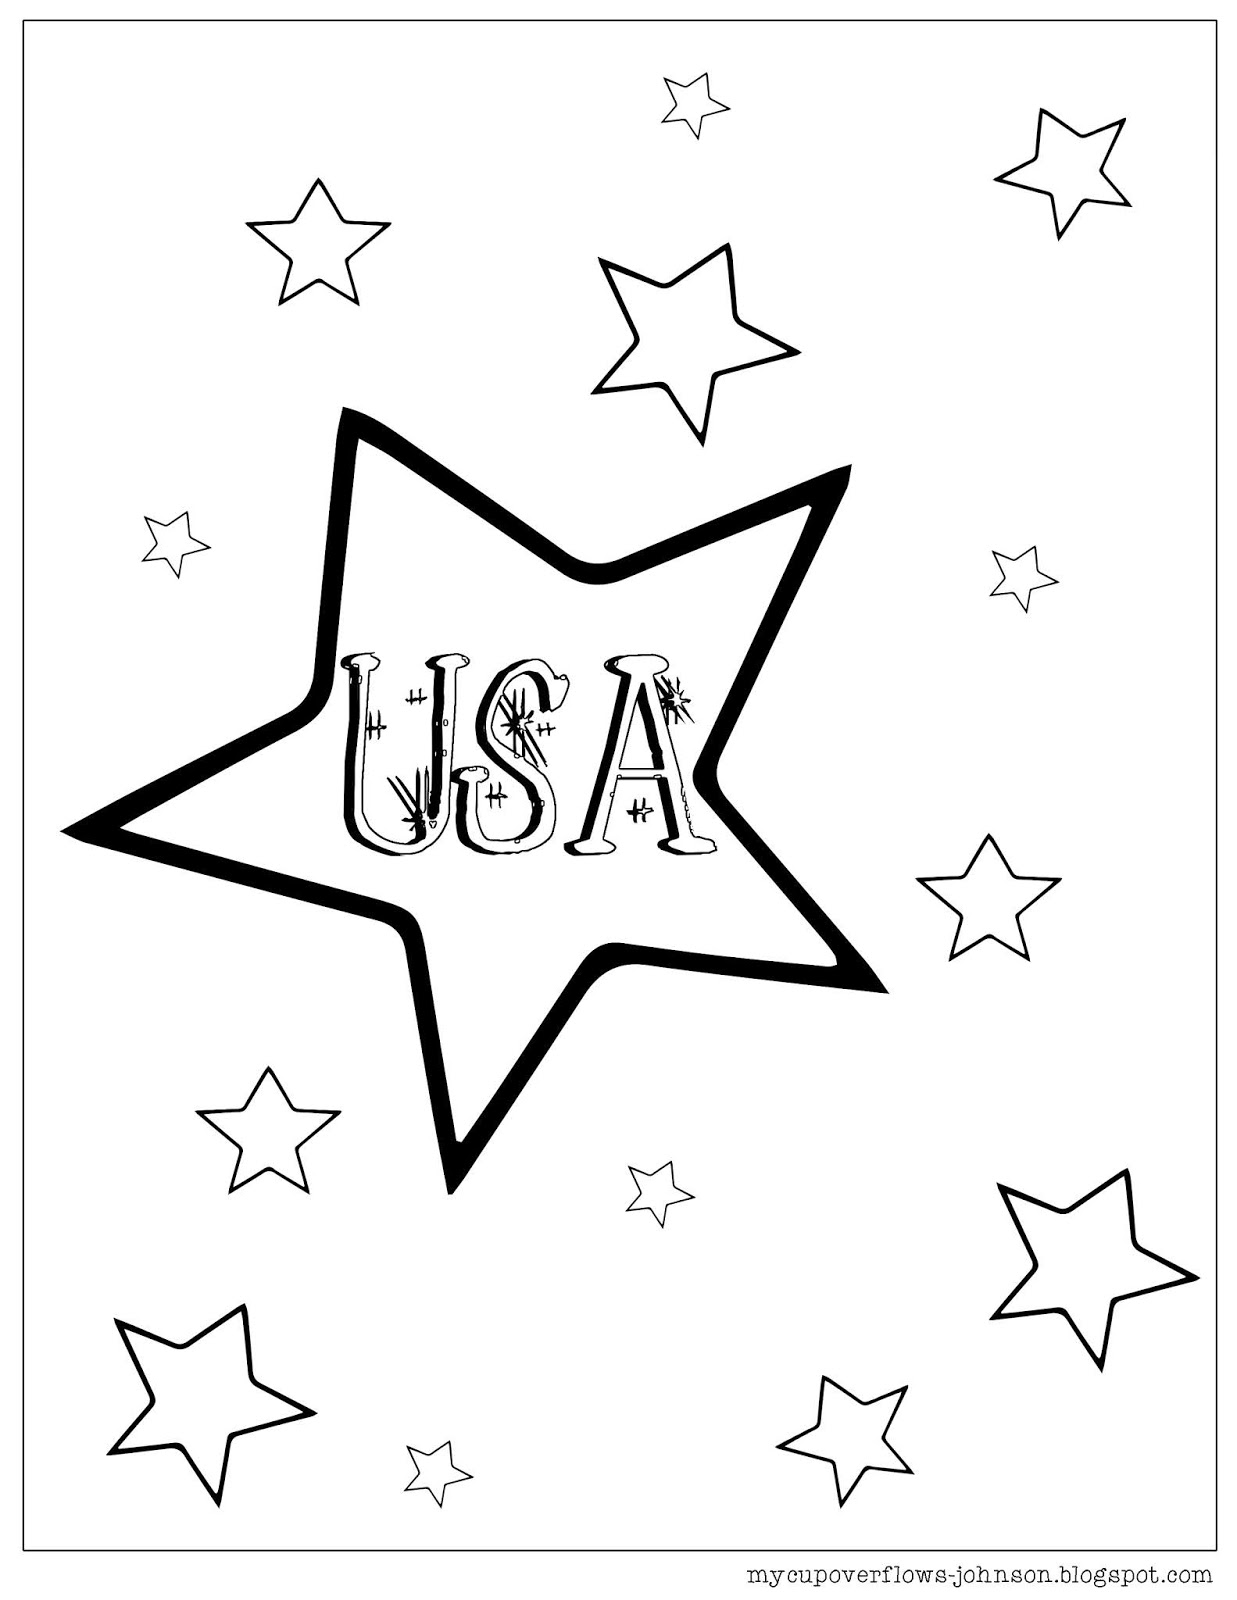 My Cup Overflows Coloring Pages For The 4th Of July